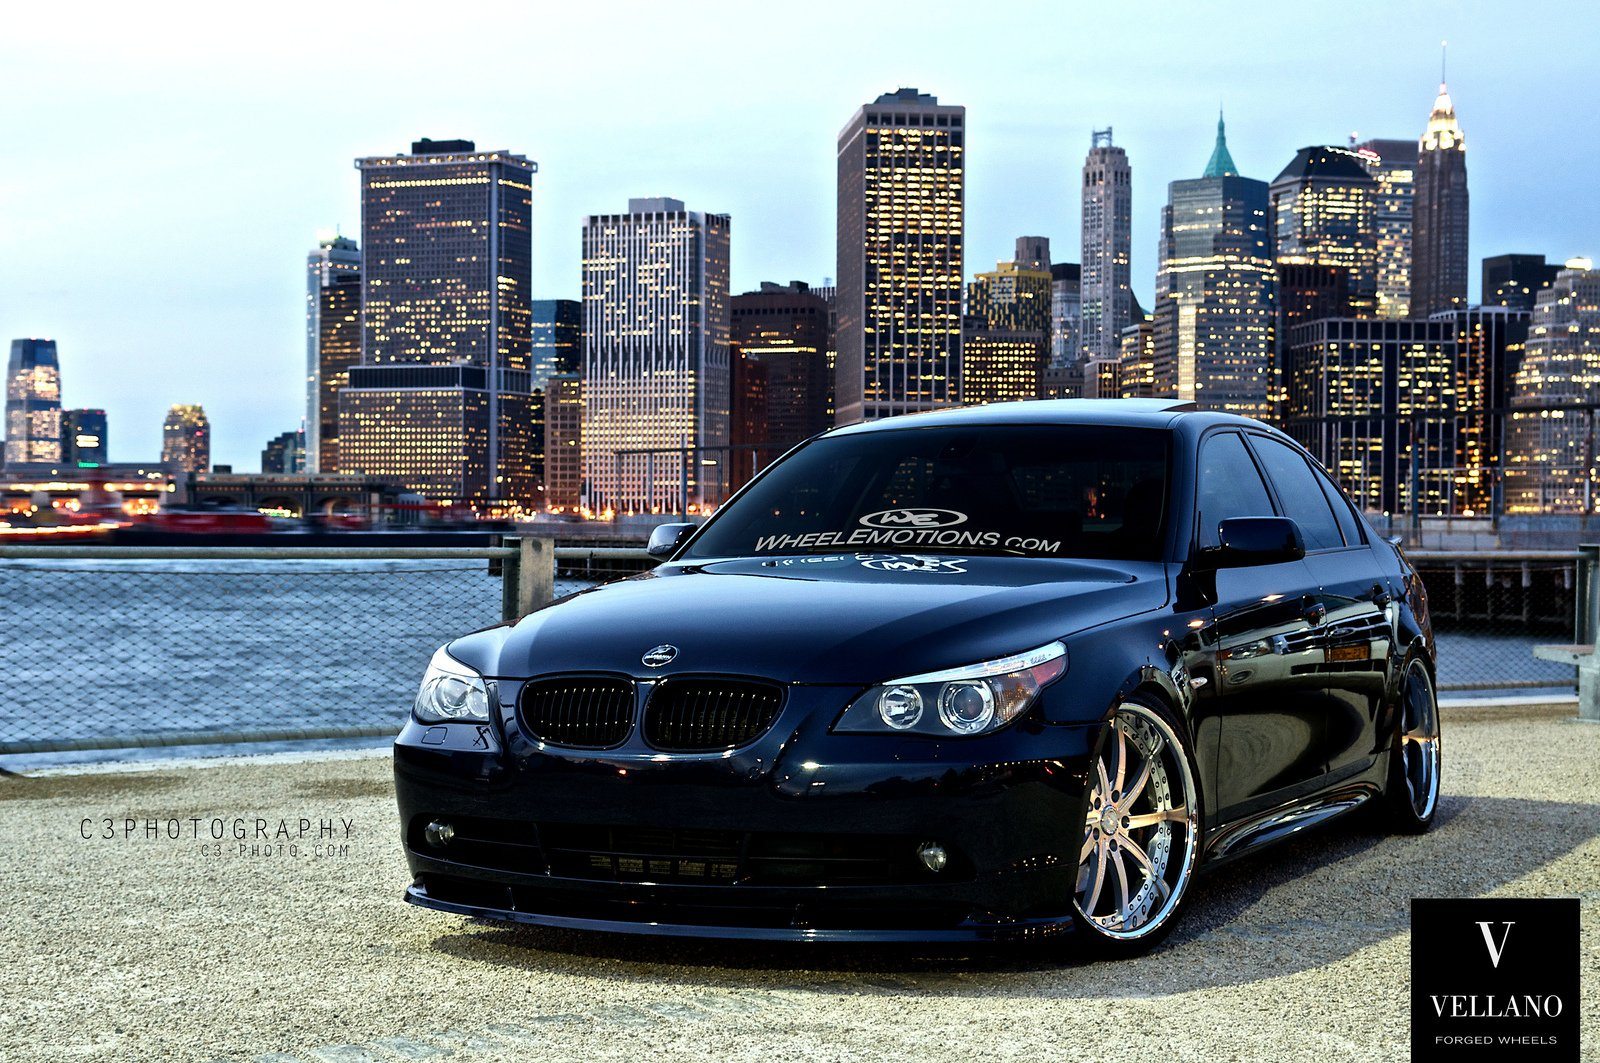 blue bmw e60 5 series germany vellano wheels tuning cars wallpaper 1600x1063 392961. Black Bedroom Furniture Sets. Home Design Ideas